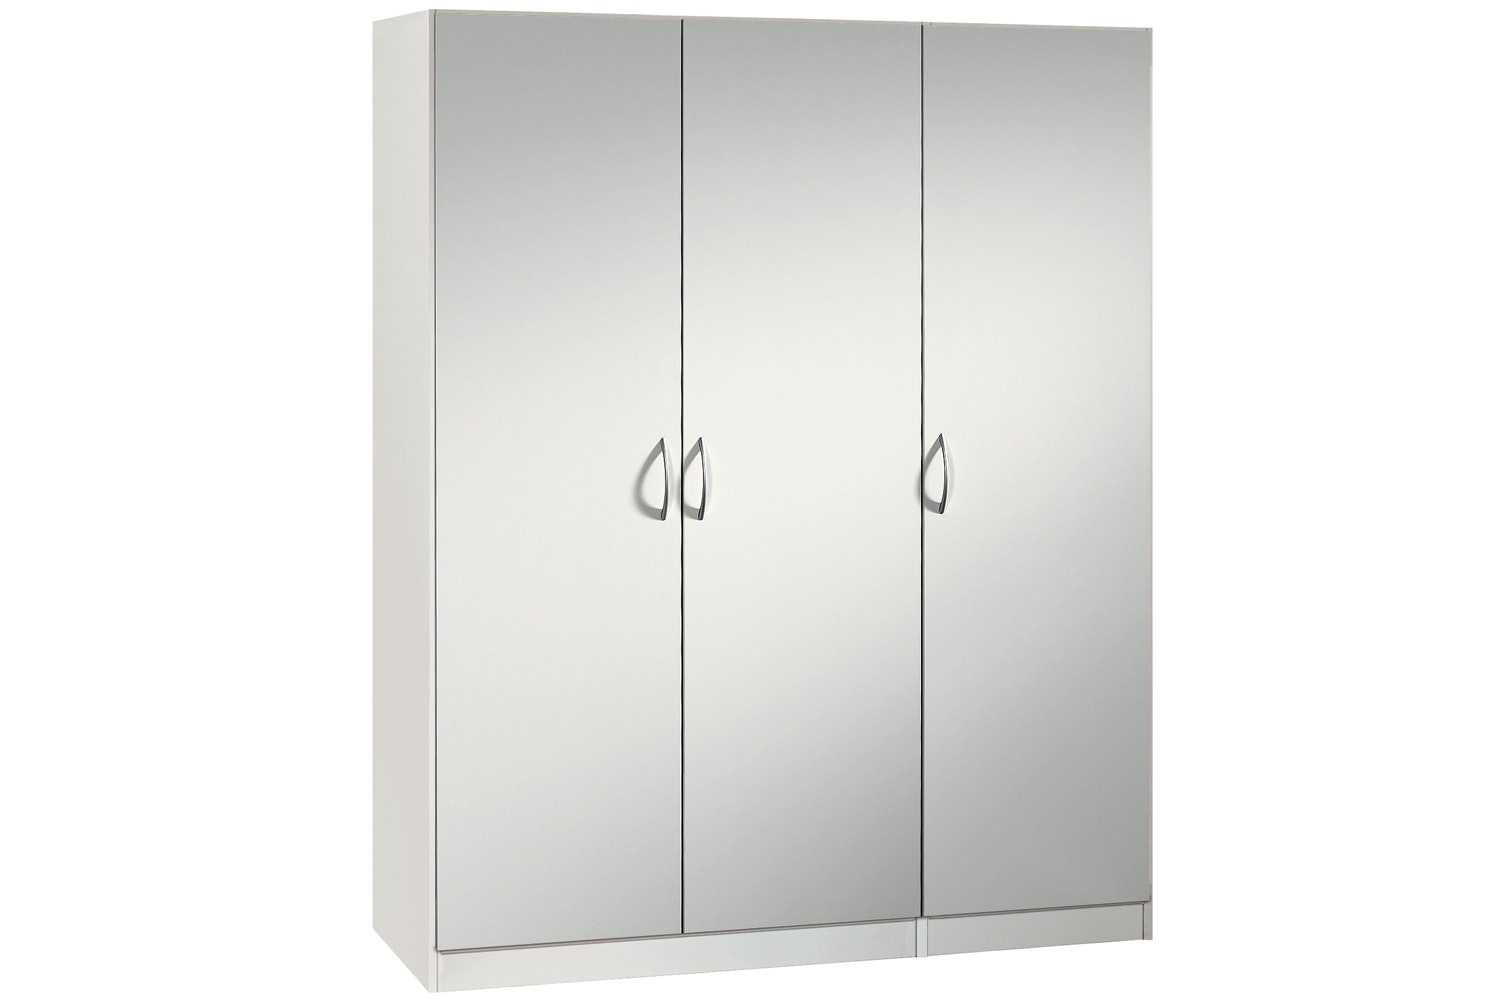 Jutzler Sonja Hinged 3 Door Wardrobe | White